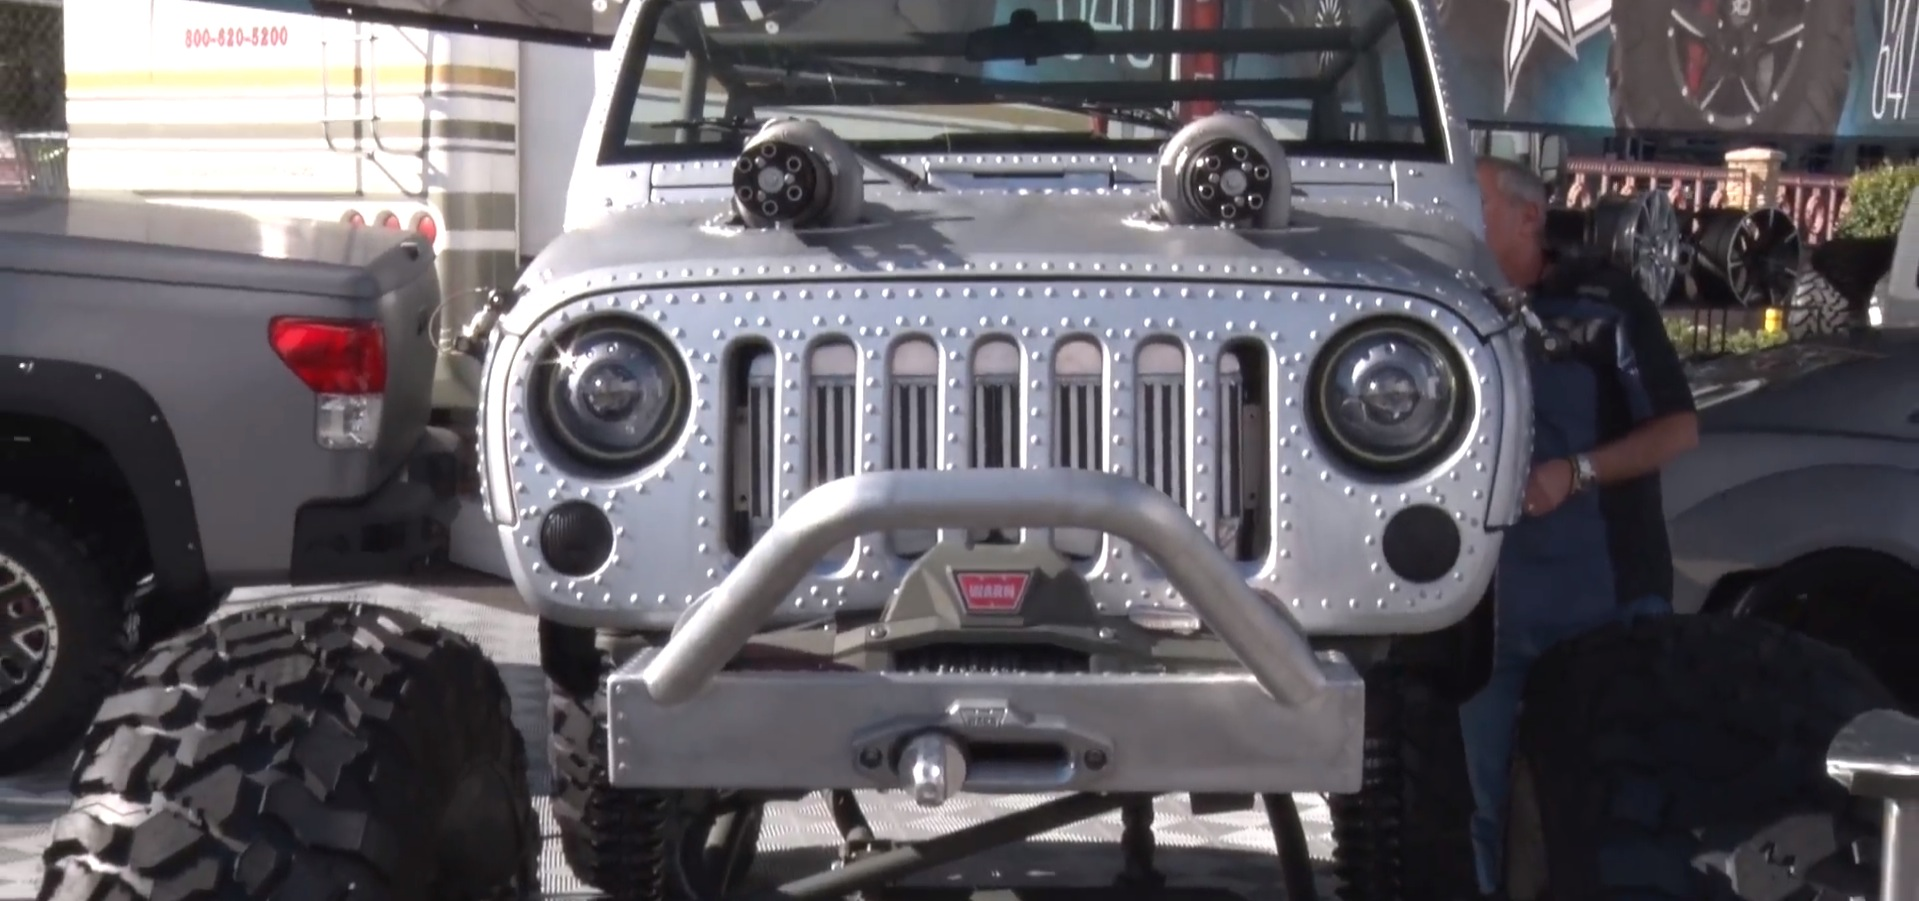 Wwii Themed Jeep Has Machine Gun Turbos And Riveted